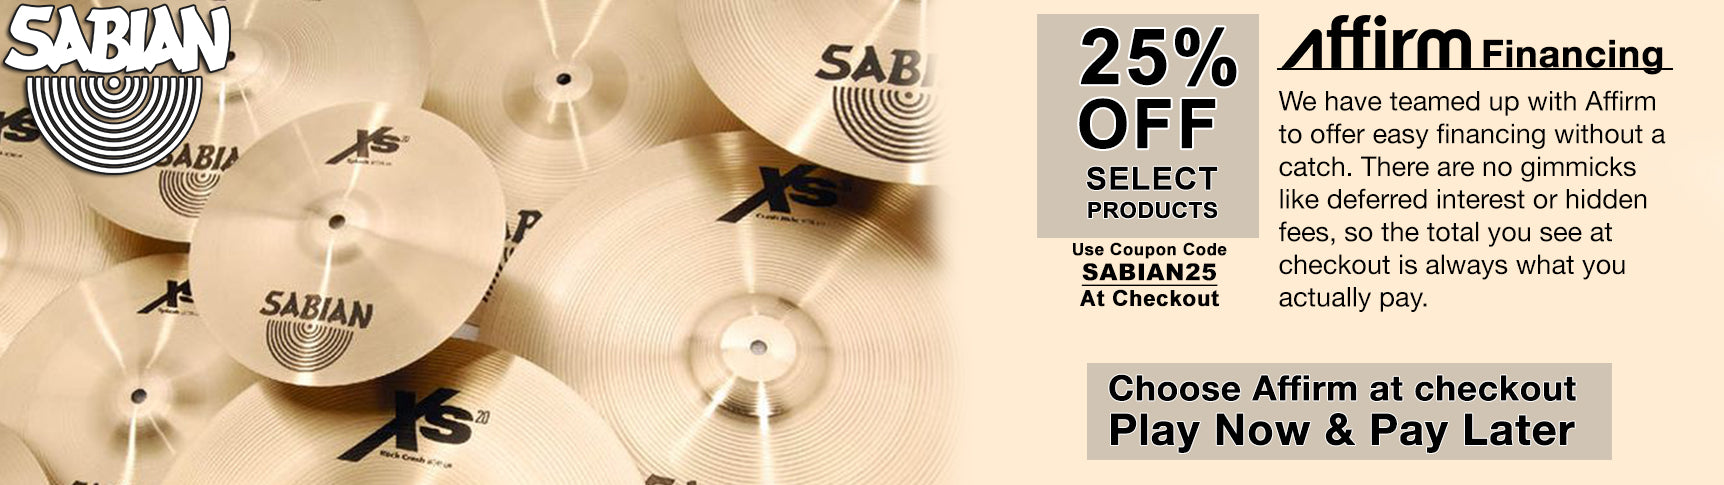 Sabian Holiday Sale